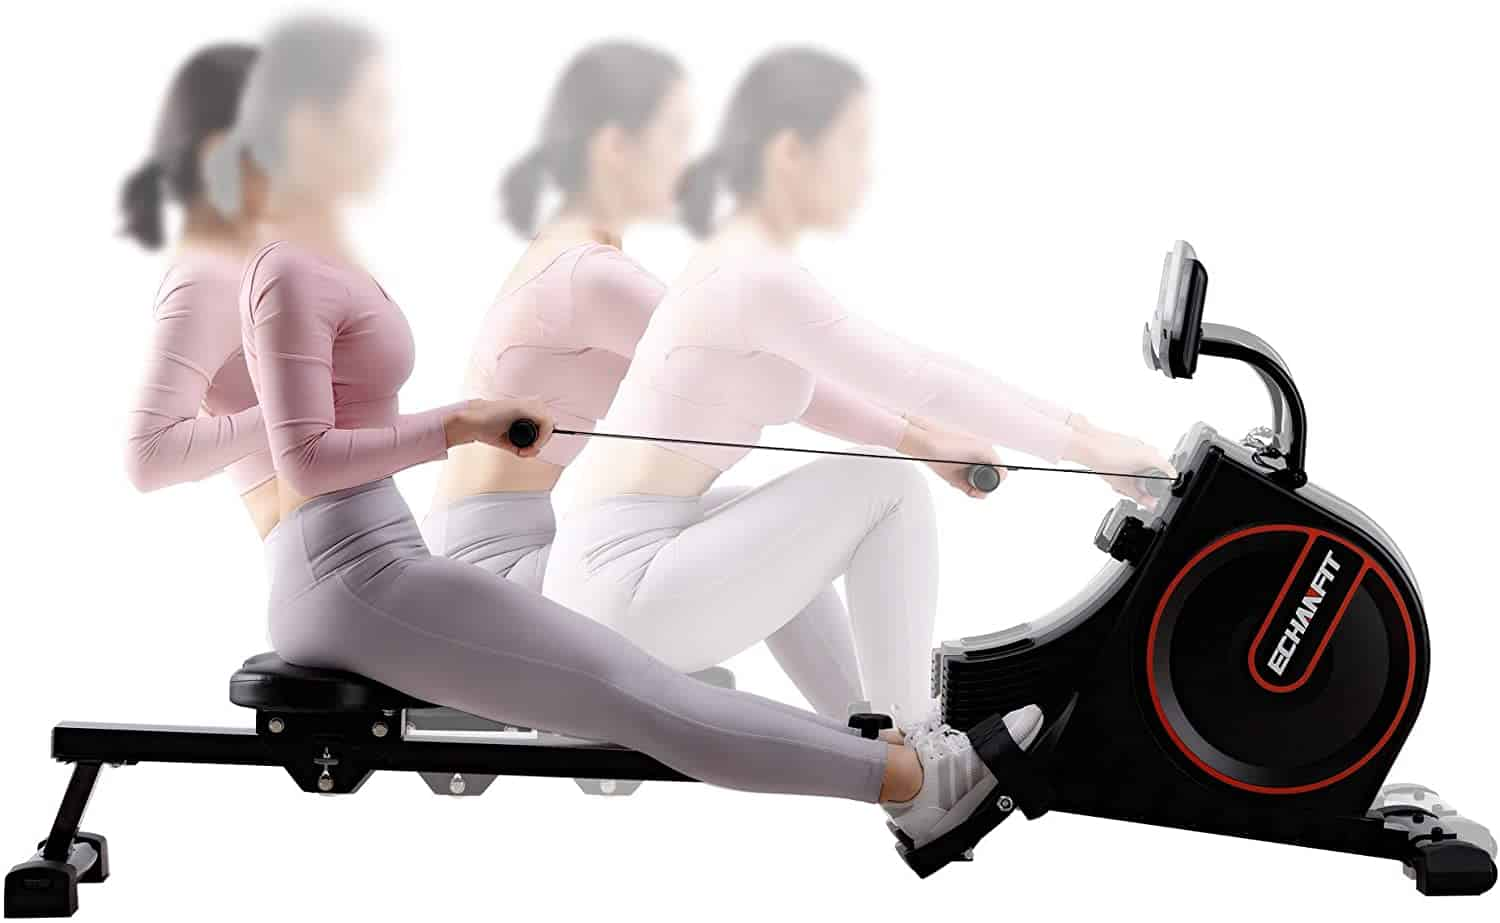 Lady rowing on the ECHANFIT CRW 4901 Magnetic Rowing Machine